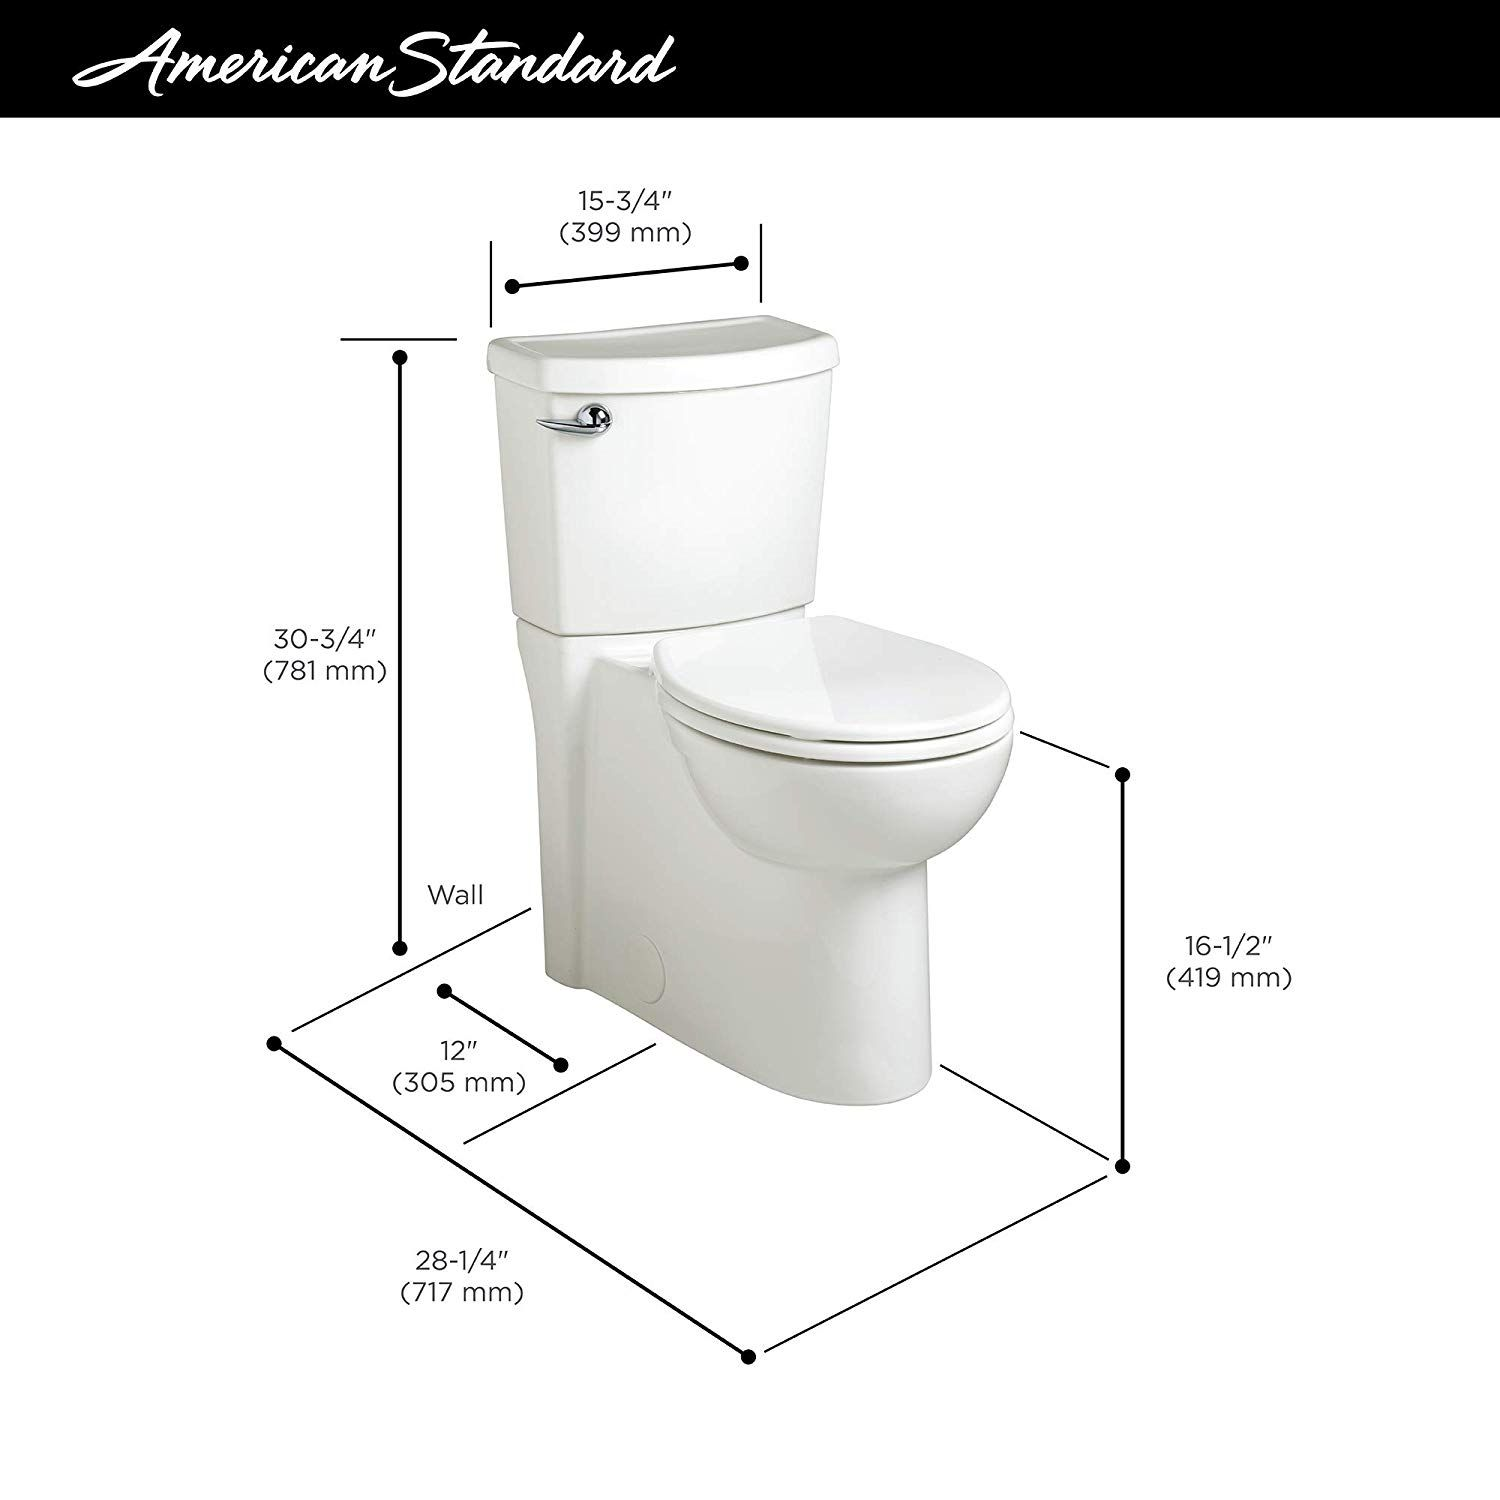 Pin By Theresa Pena On Powder Room2 American Standard Toilet